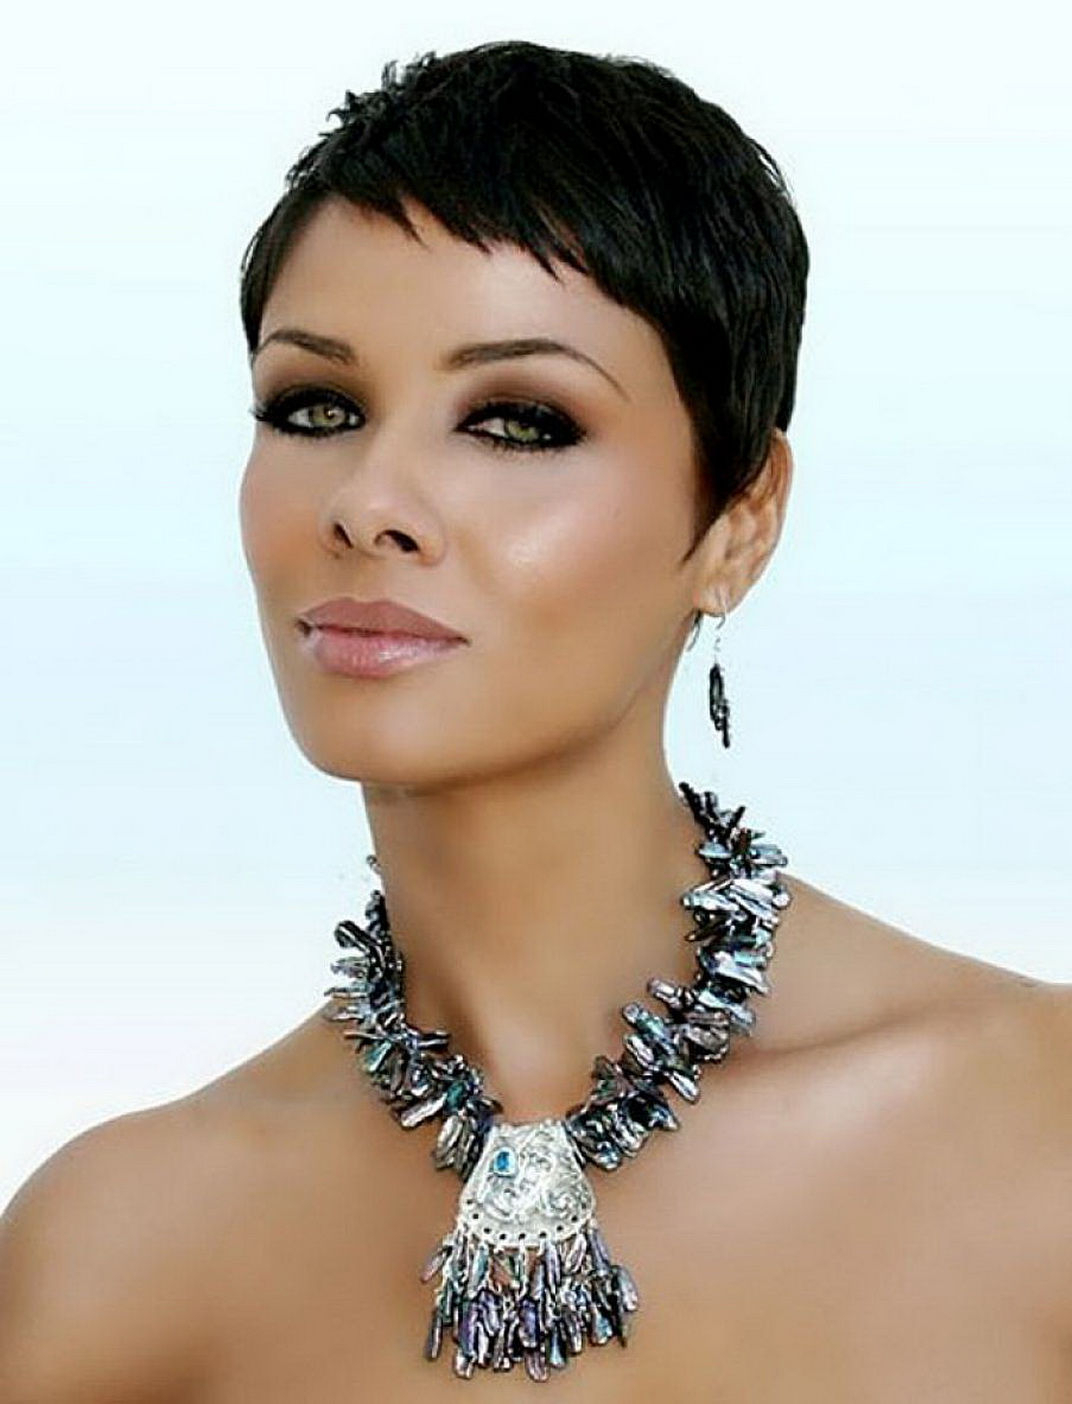 23 Of The Best Looking Short Pixie Haircuts | Styles Weekly Regarding Dramatic Short Haircuts (View 1 of 25)